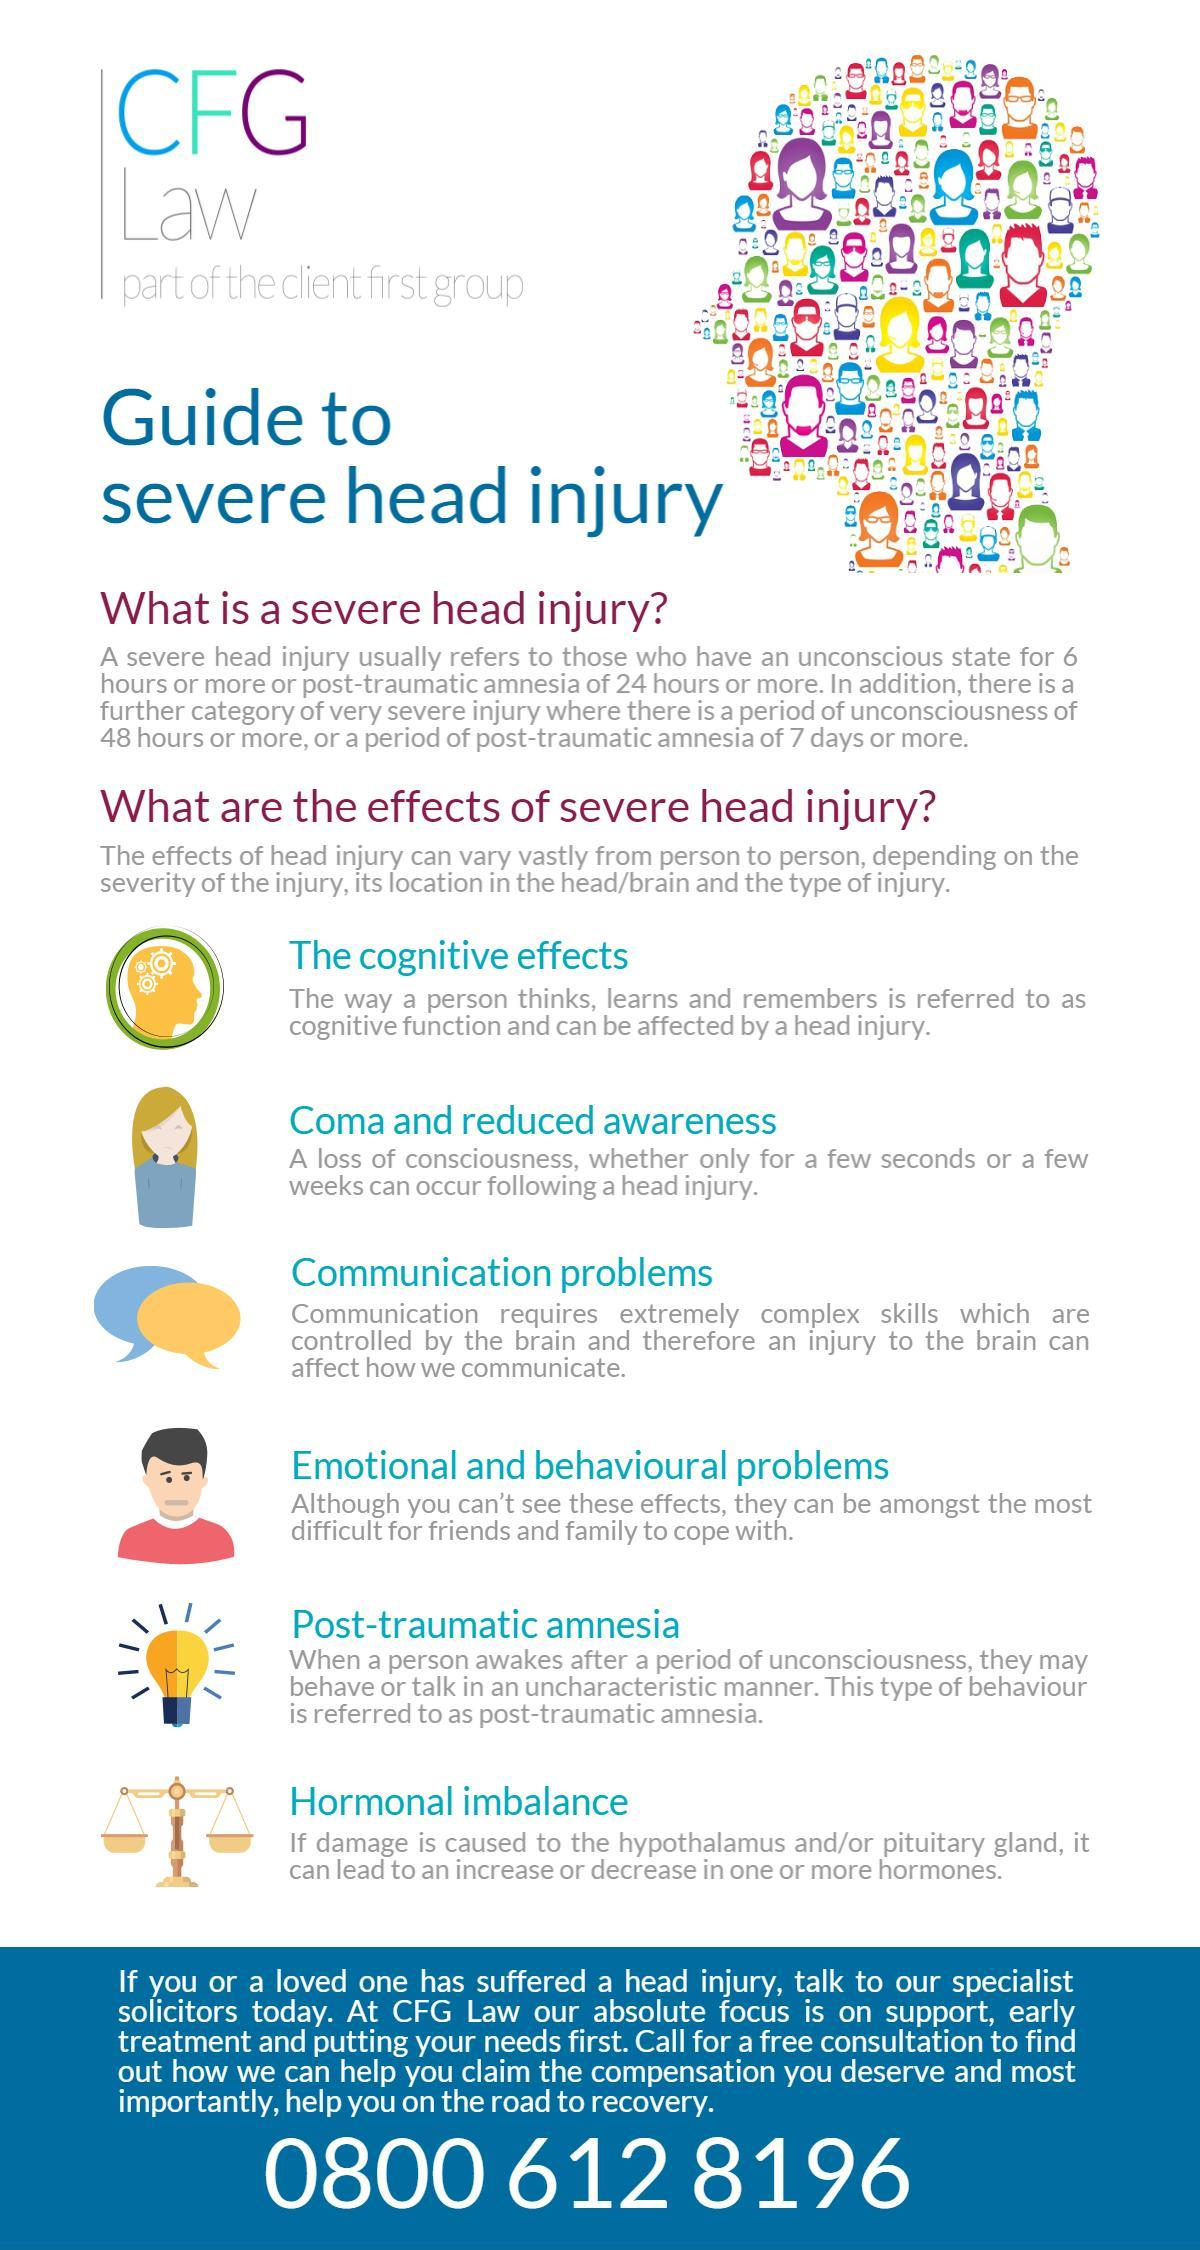 Guide to severe head injury